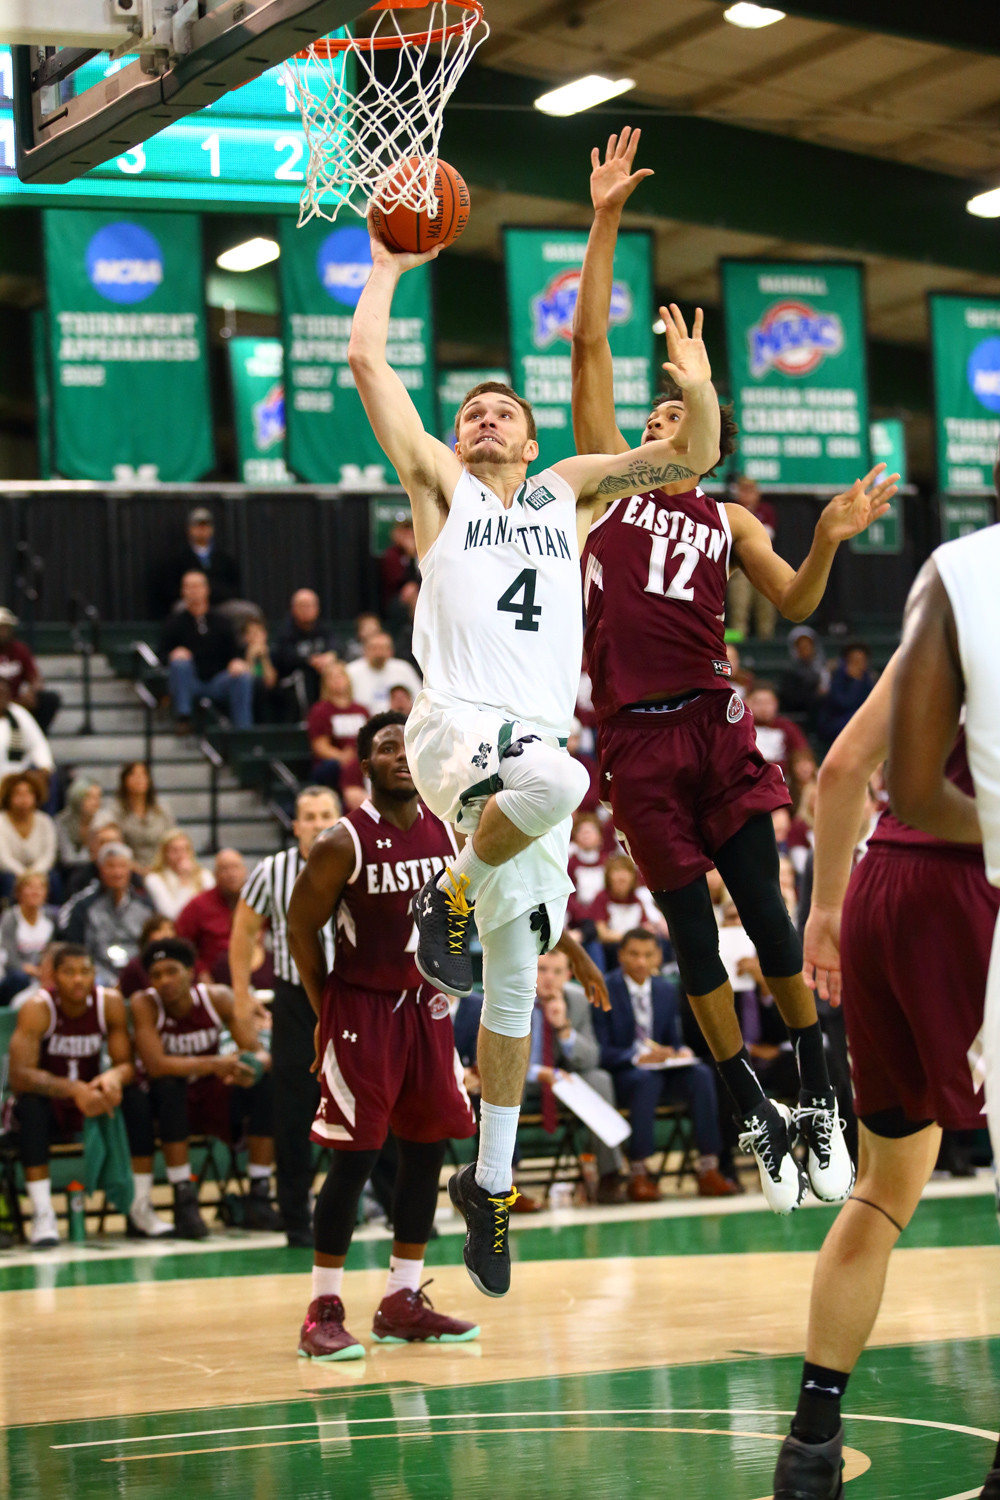 Jaspers senior Zane Waterman (4), who averaged 14.5 points and a team-best 7.0 rebounds last season, will look to lead Manhattan back to the top of the MAAC this season.